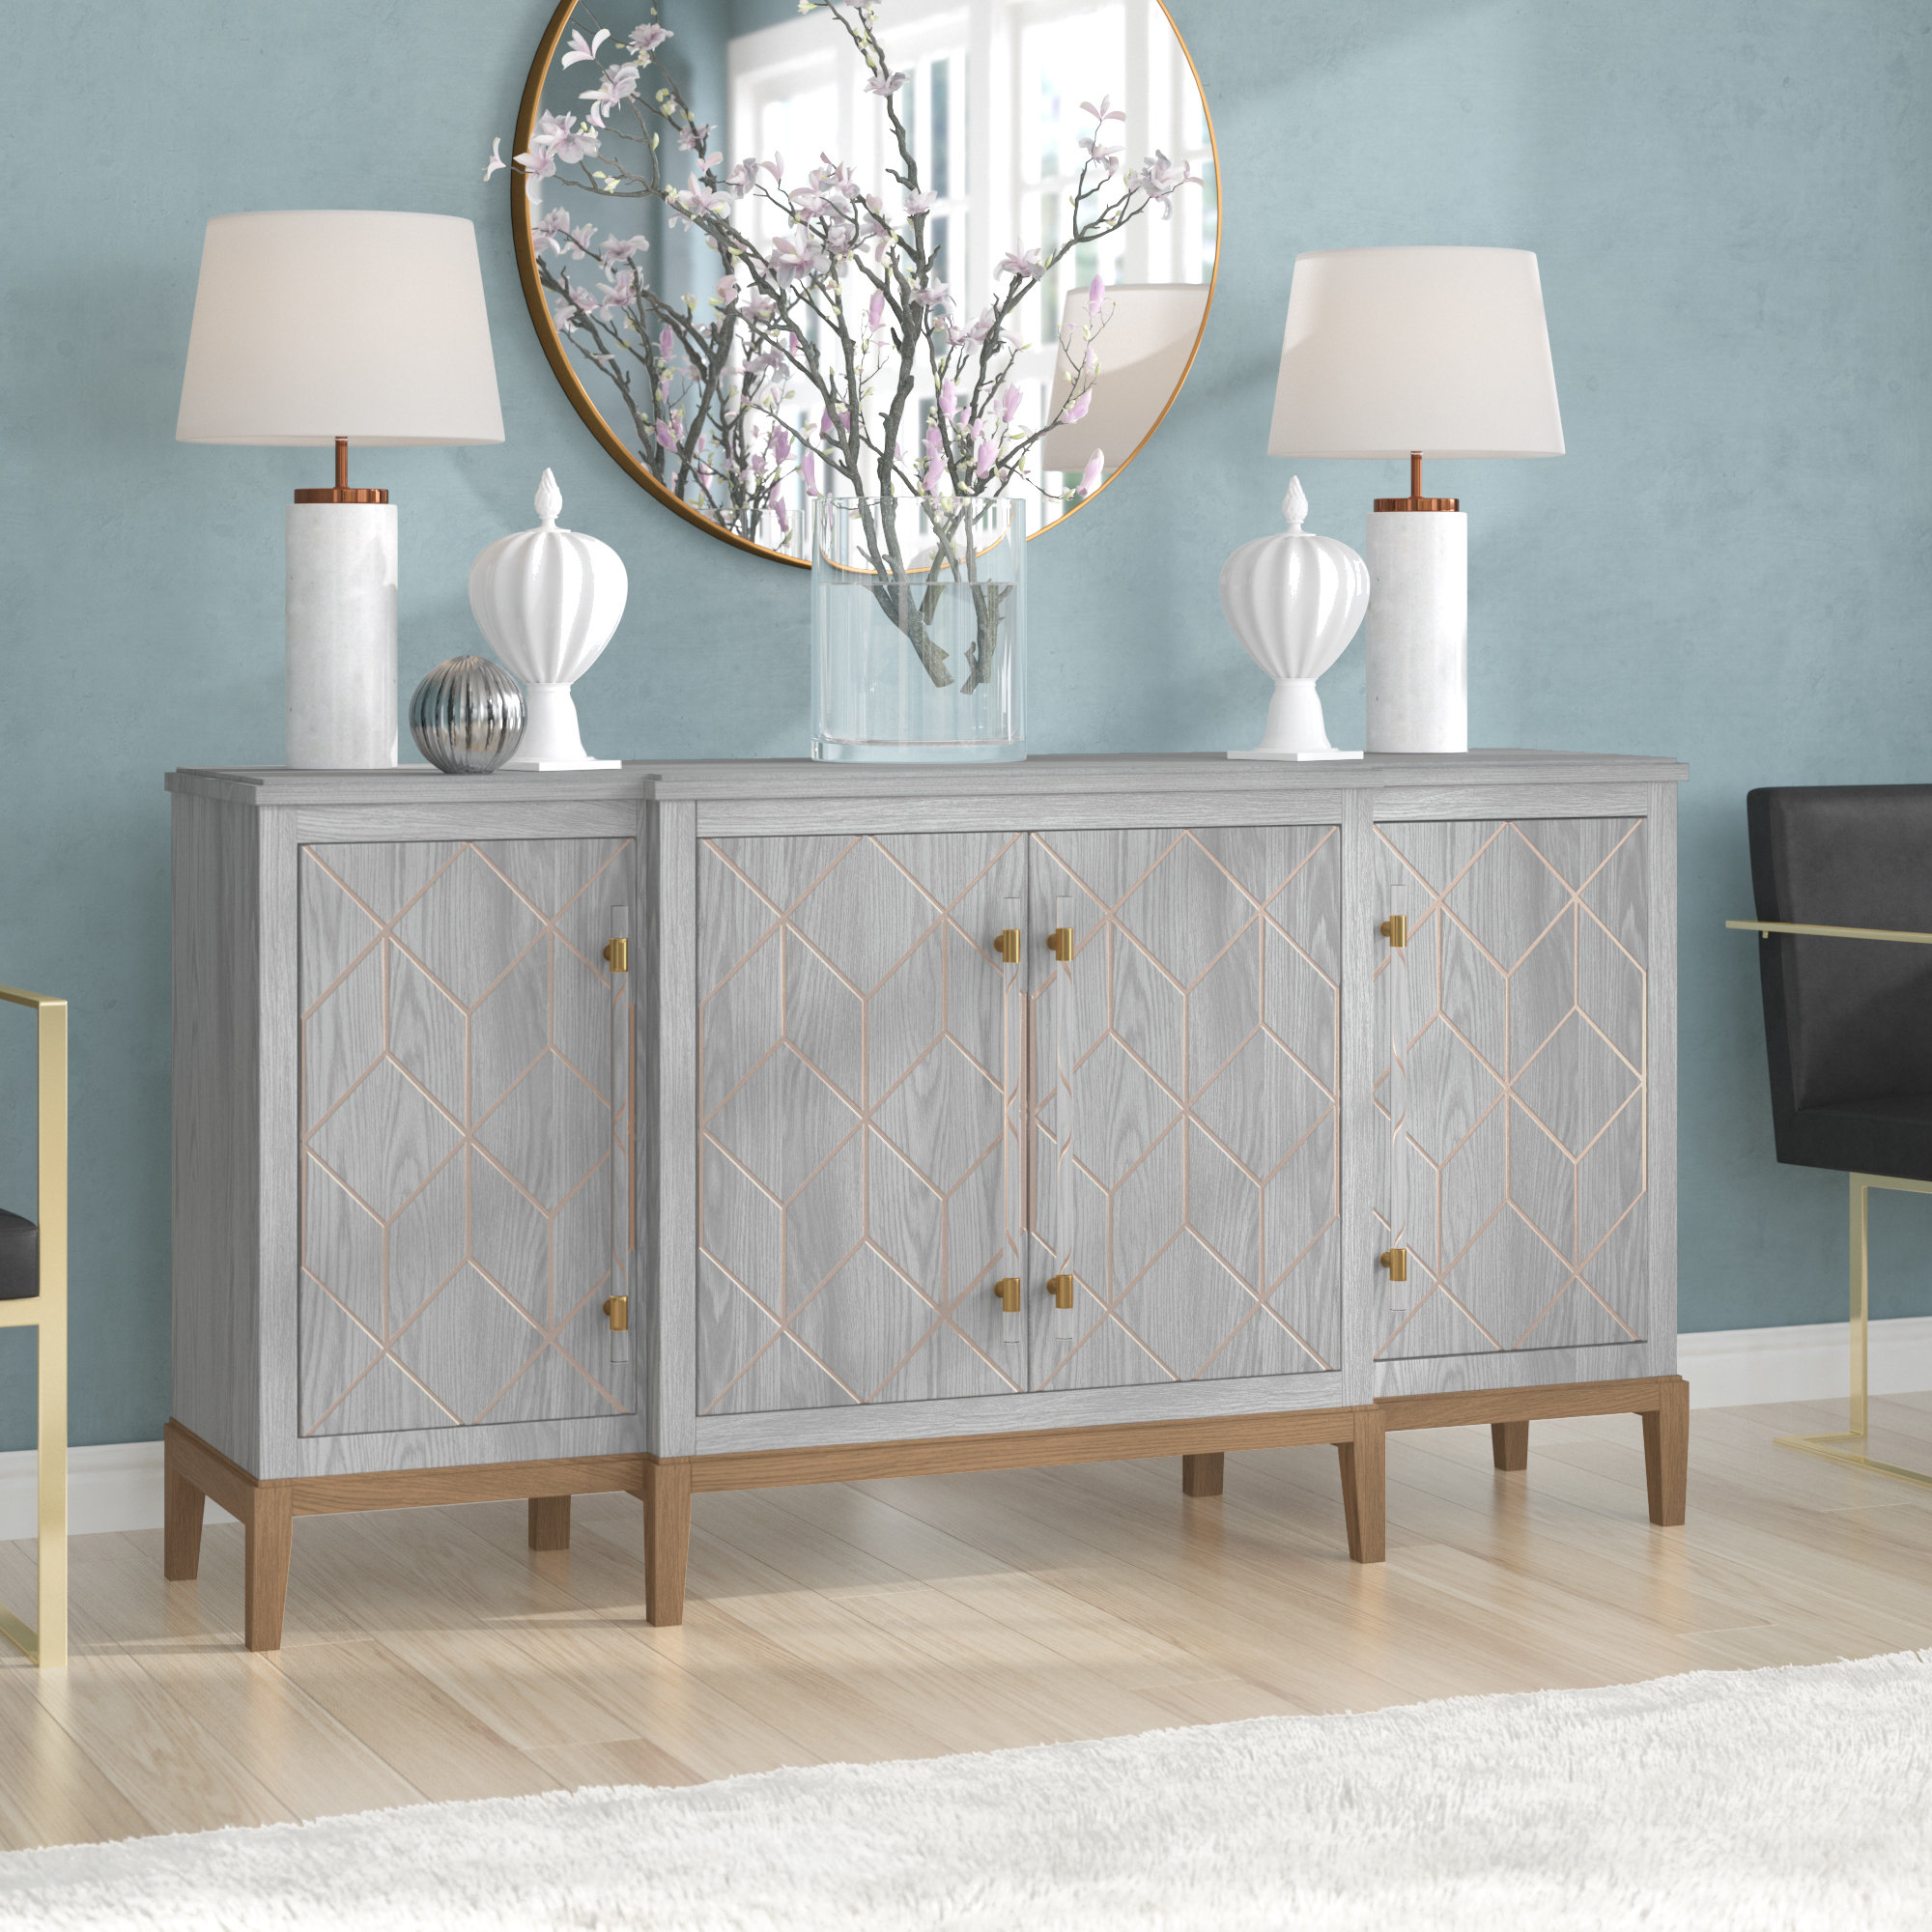 Extra Large Credenza | Wayfair Within Barr Credenzas (Gallery 15 of 20)